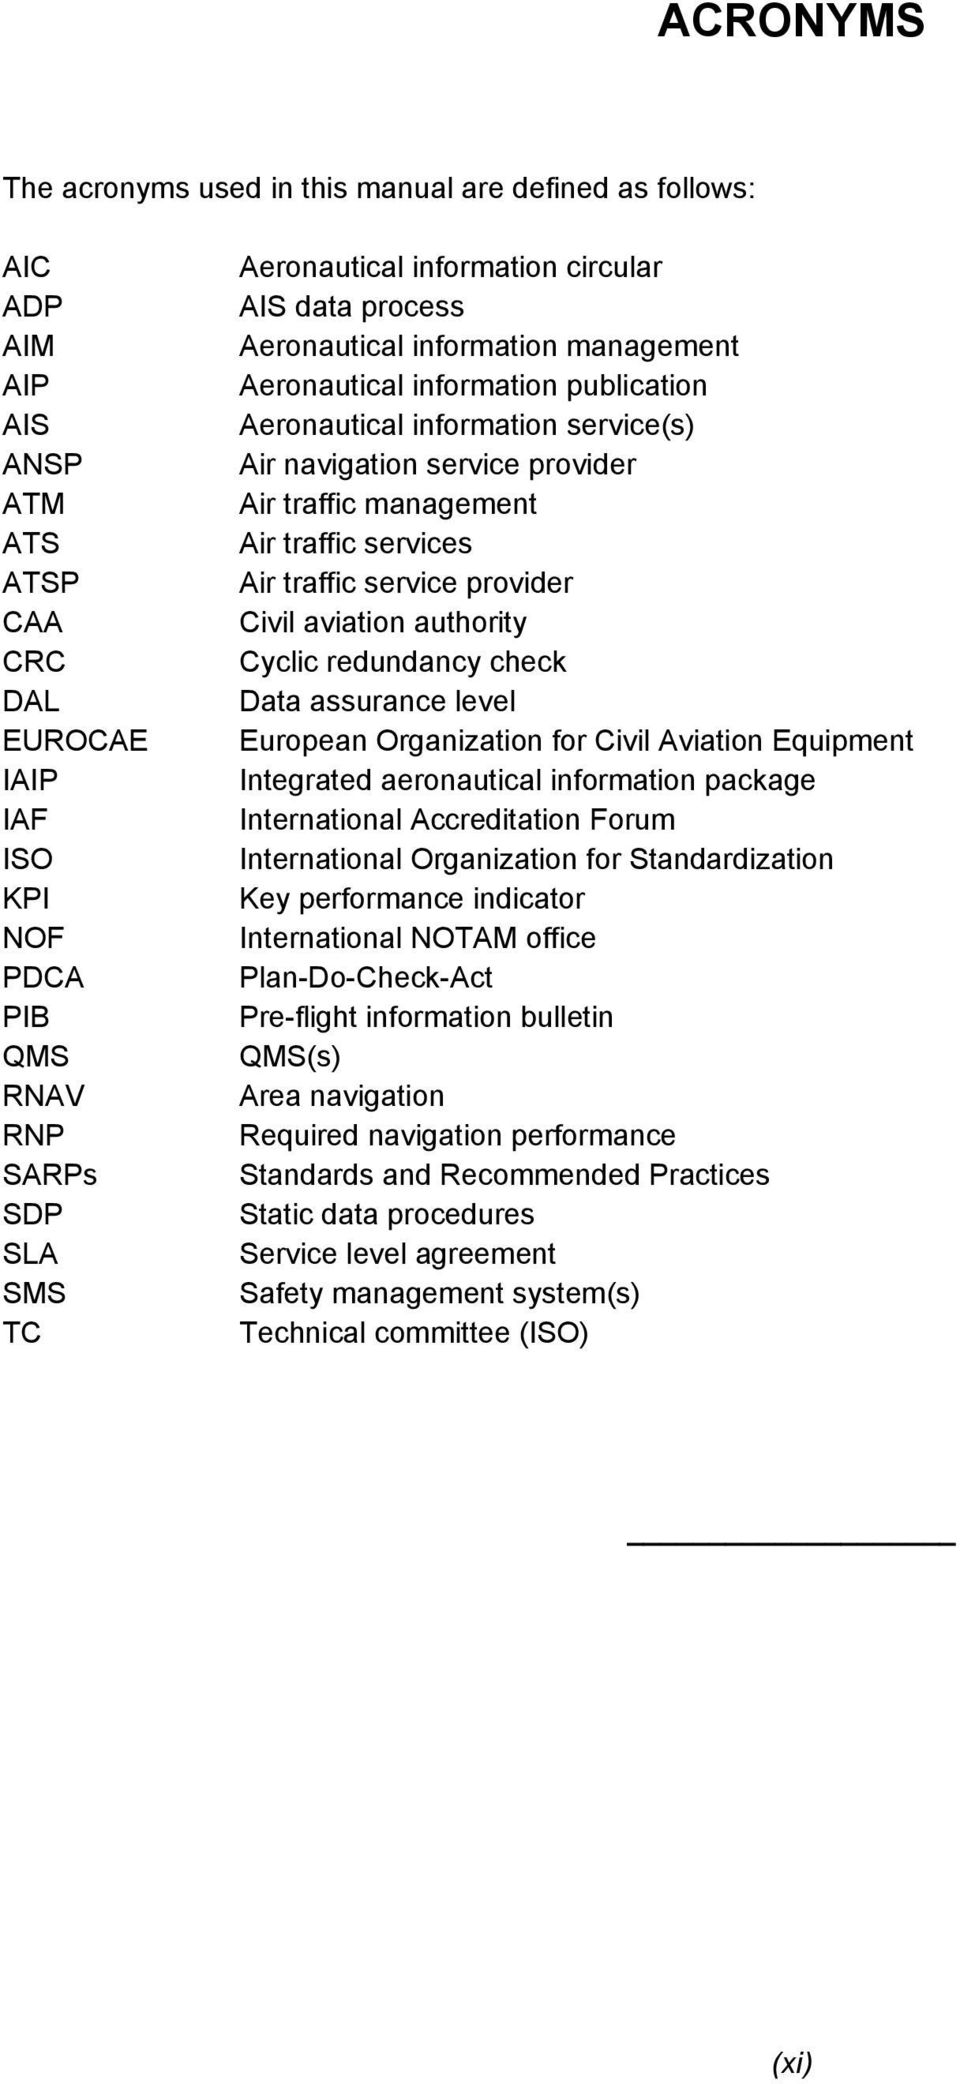 Manual on the Quality Management System for Aeronautical Information ...